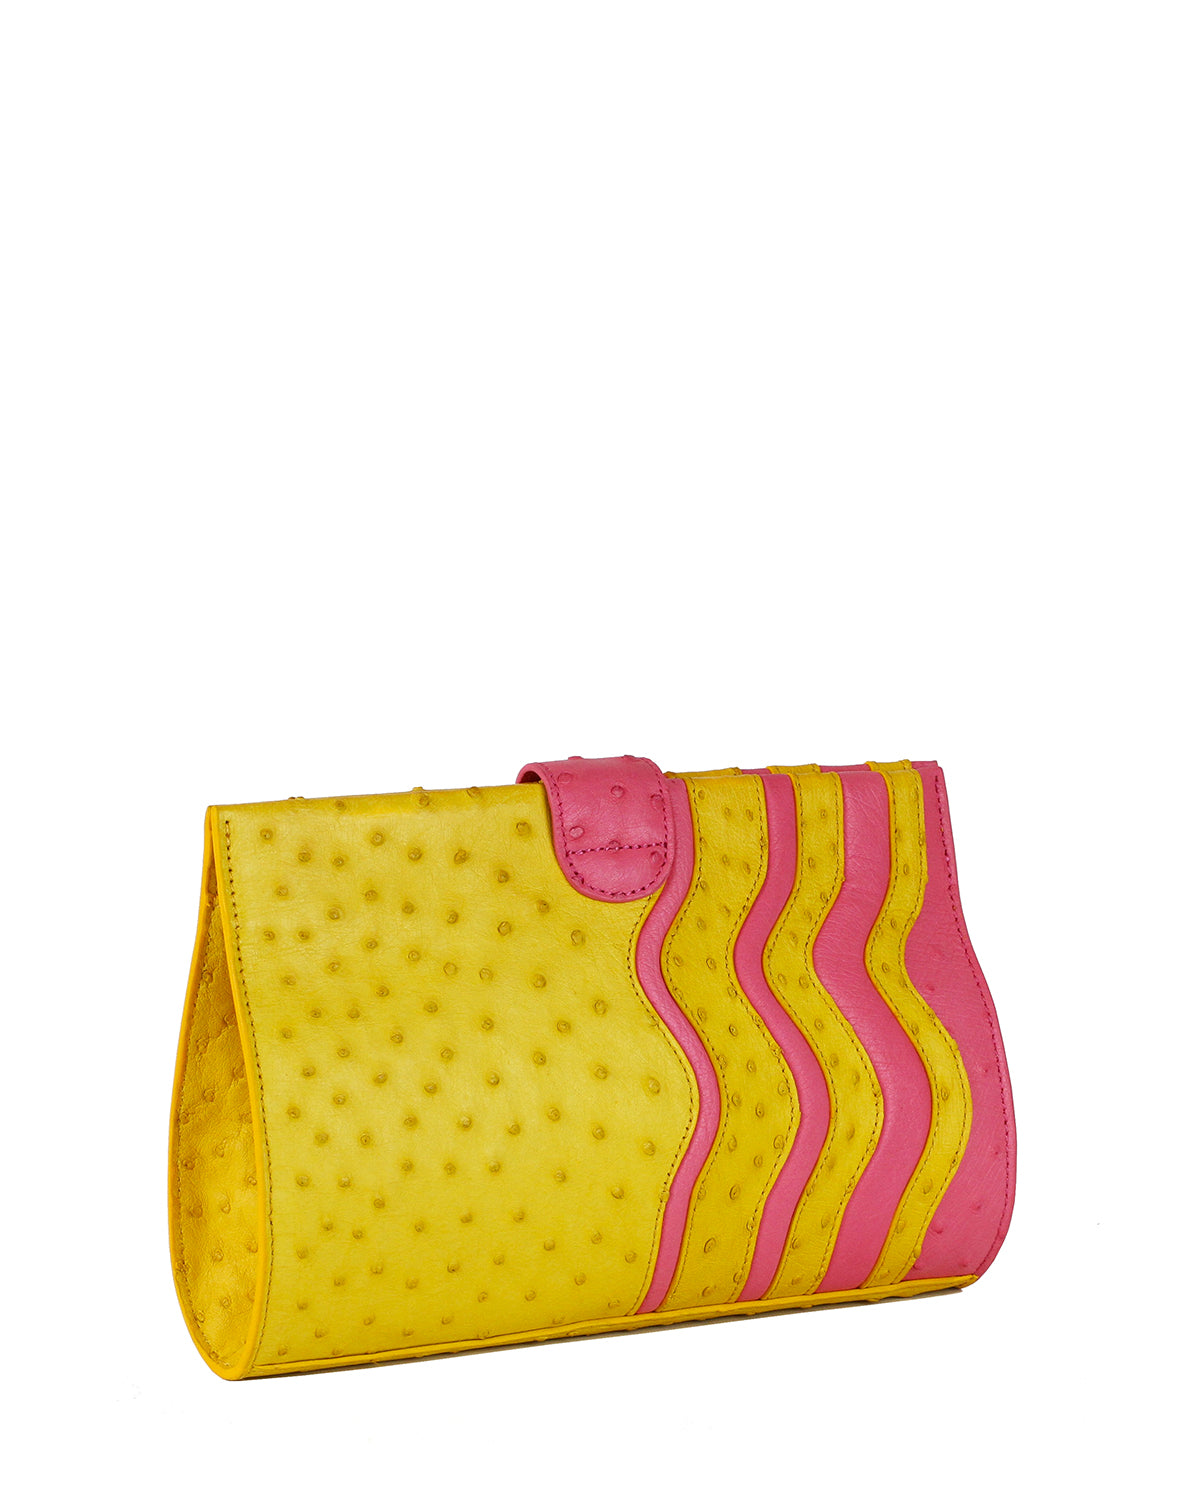 Genuine Ostrich Clutch in Yellow with Pink wavy Trims back angle view